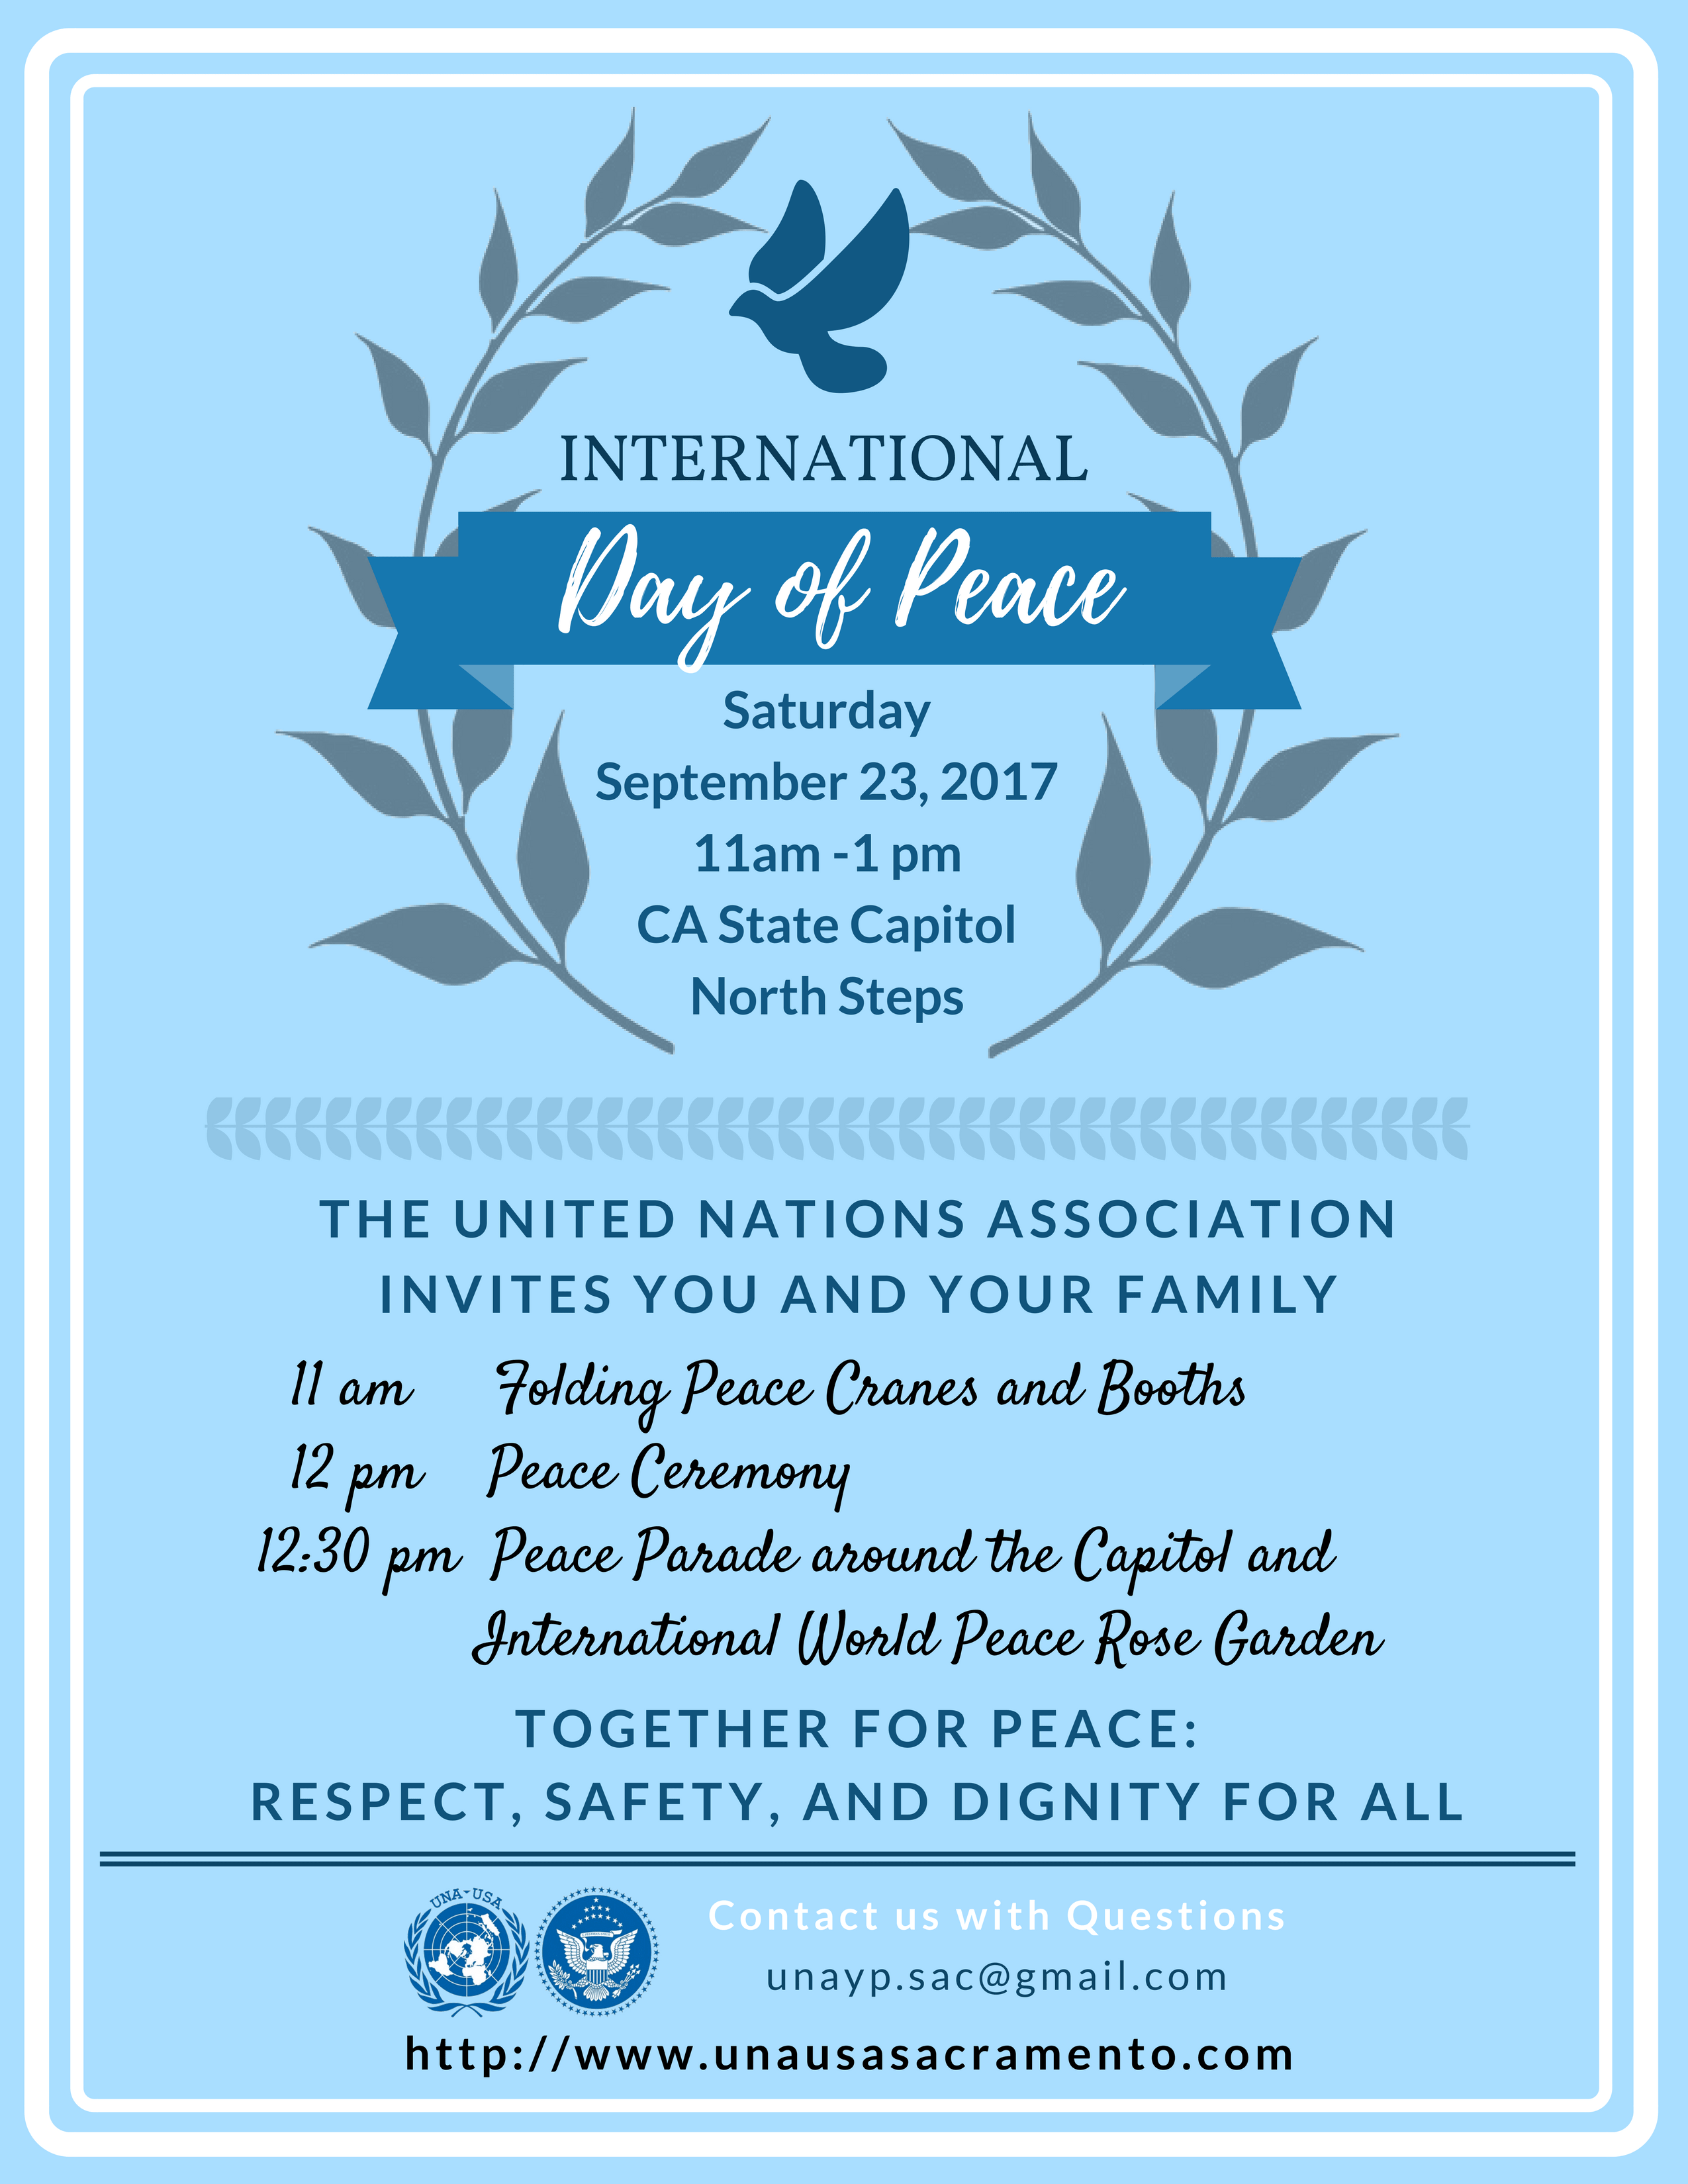 International Day of Peace Flyer. September 23 11am - 1pm California State Capitol, North Steps